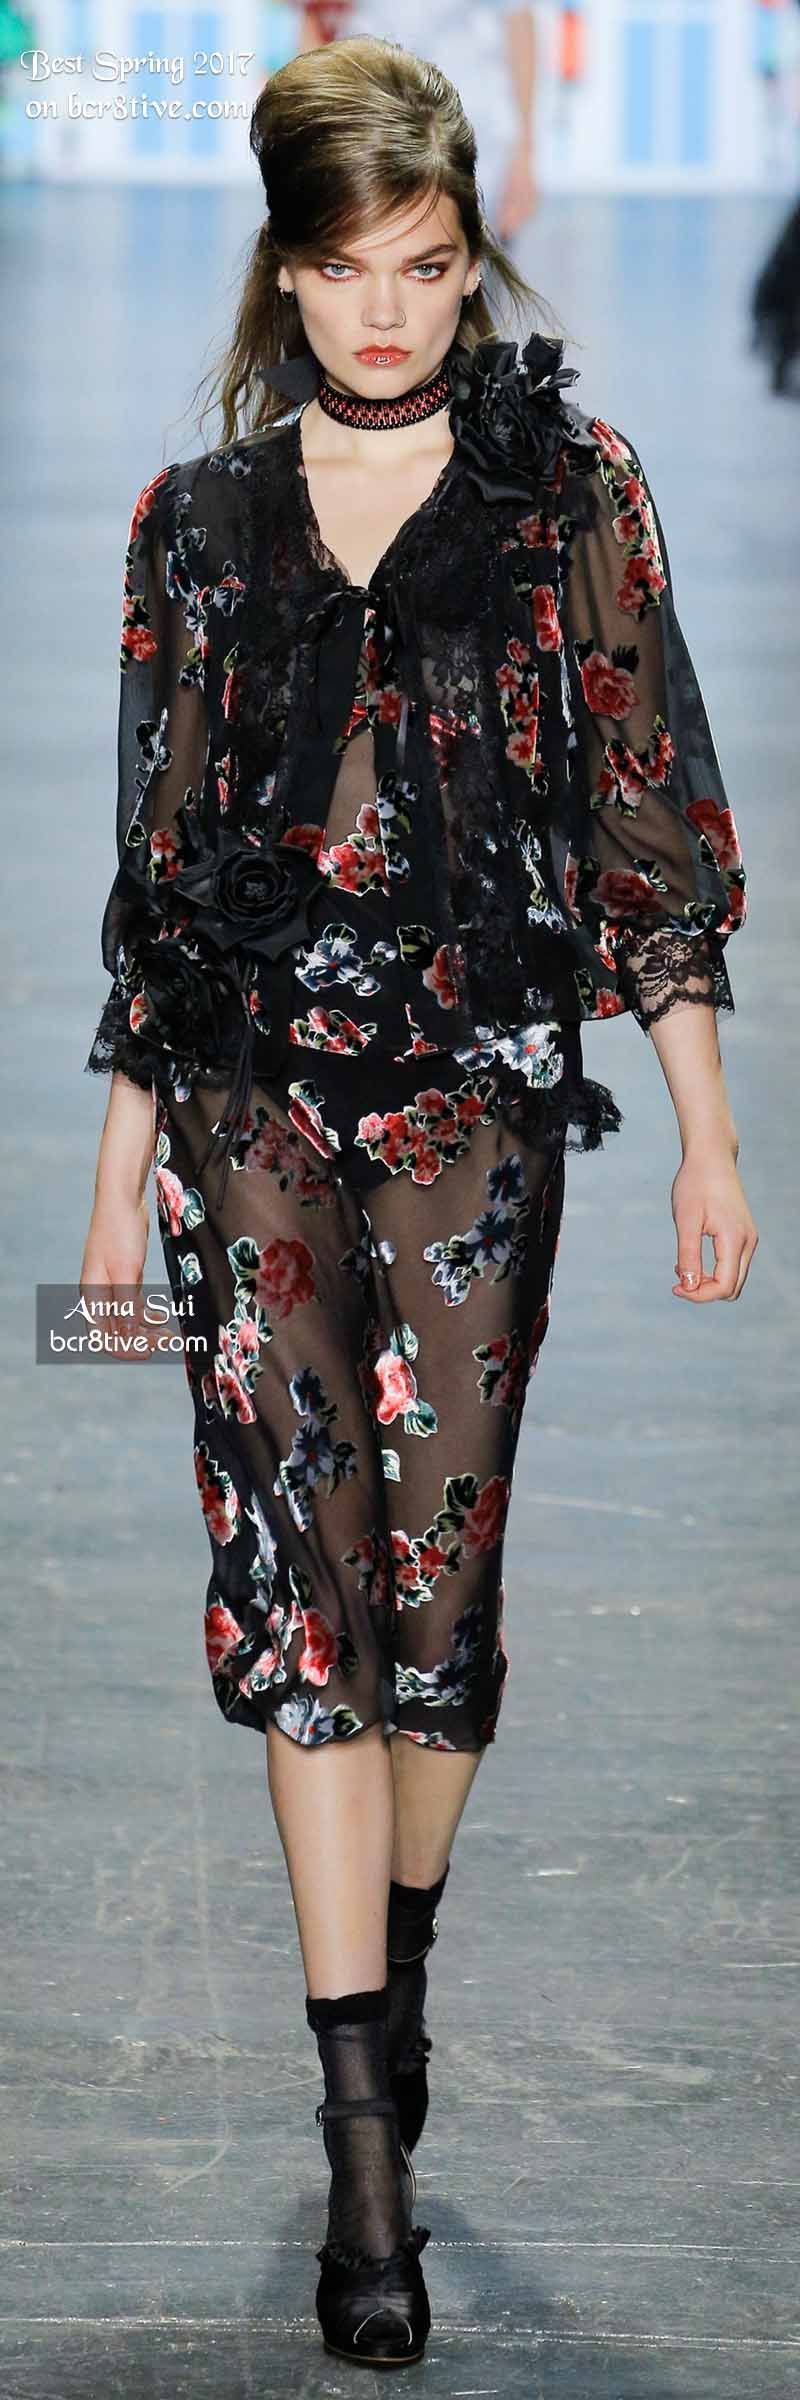 Anna Sui - The Best Looks from New York Fashion Week Spring 2017